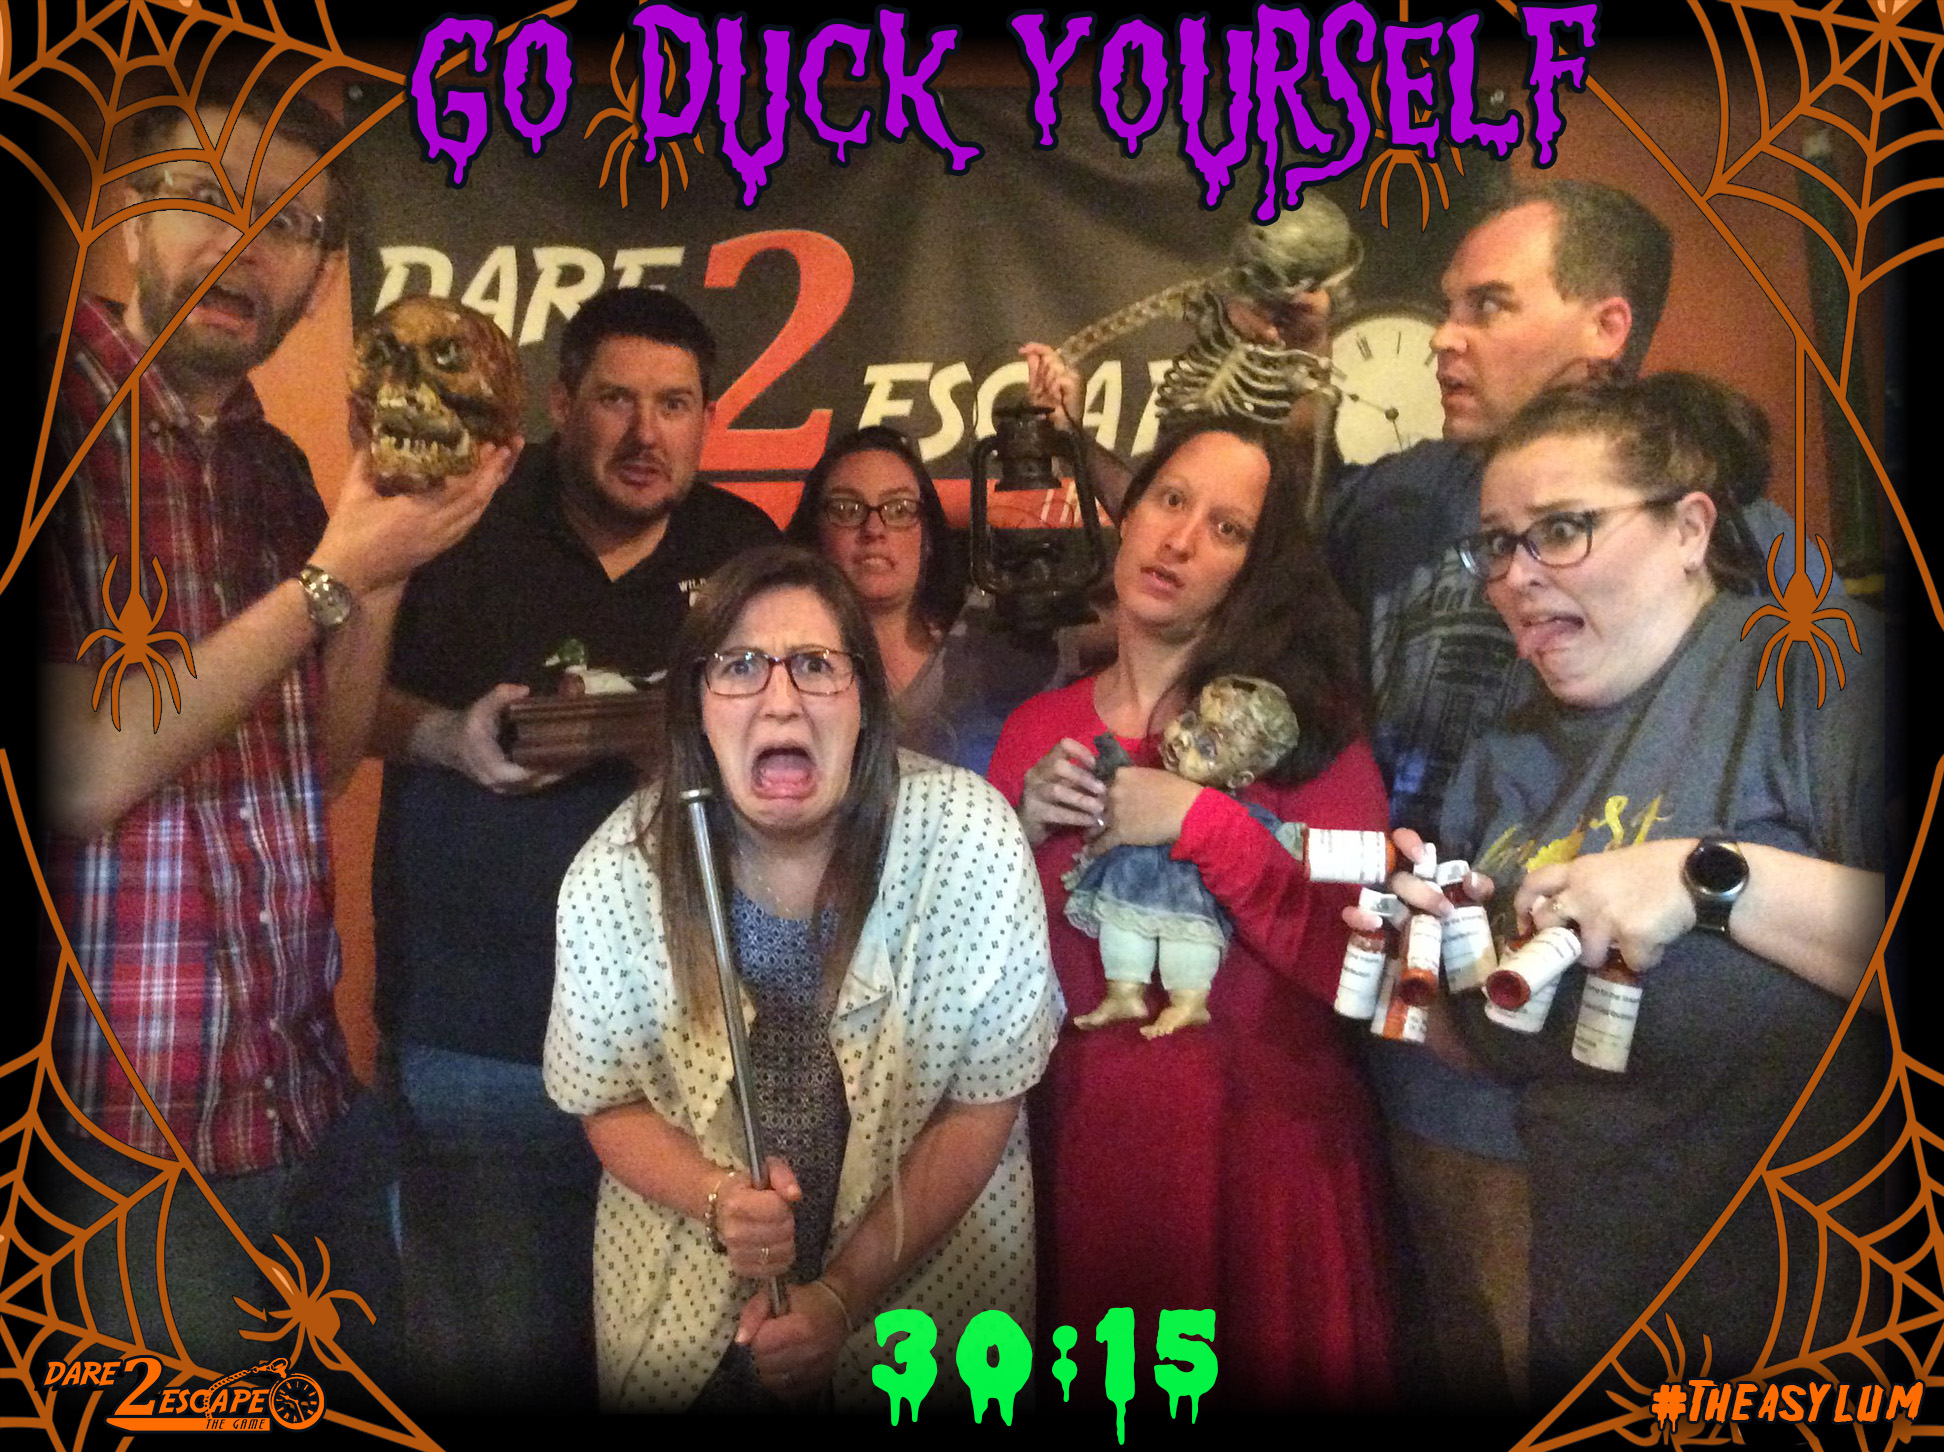 Go Duck Yourself 3015.jpg